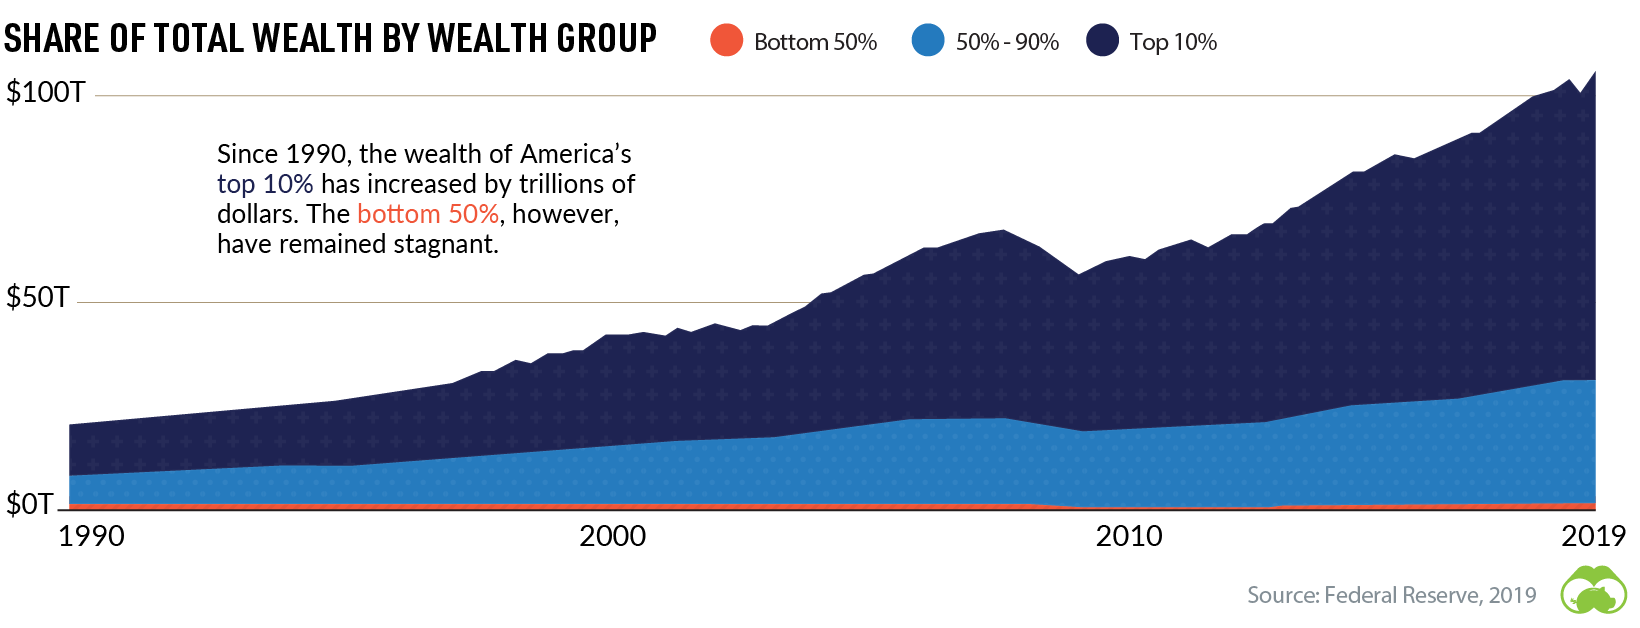 share of total wealth by wealth group